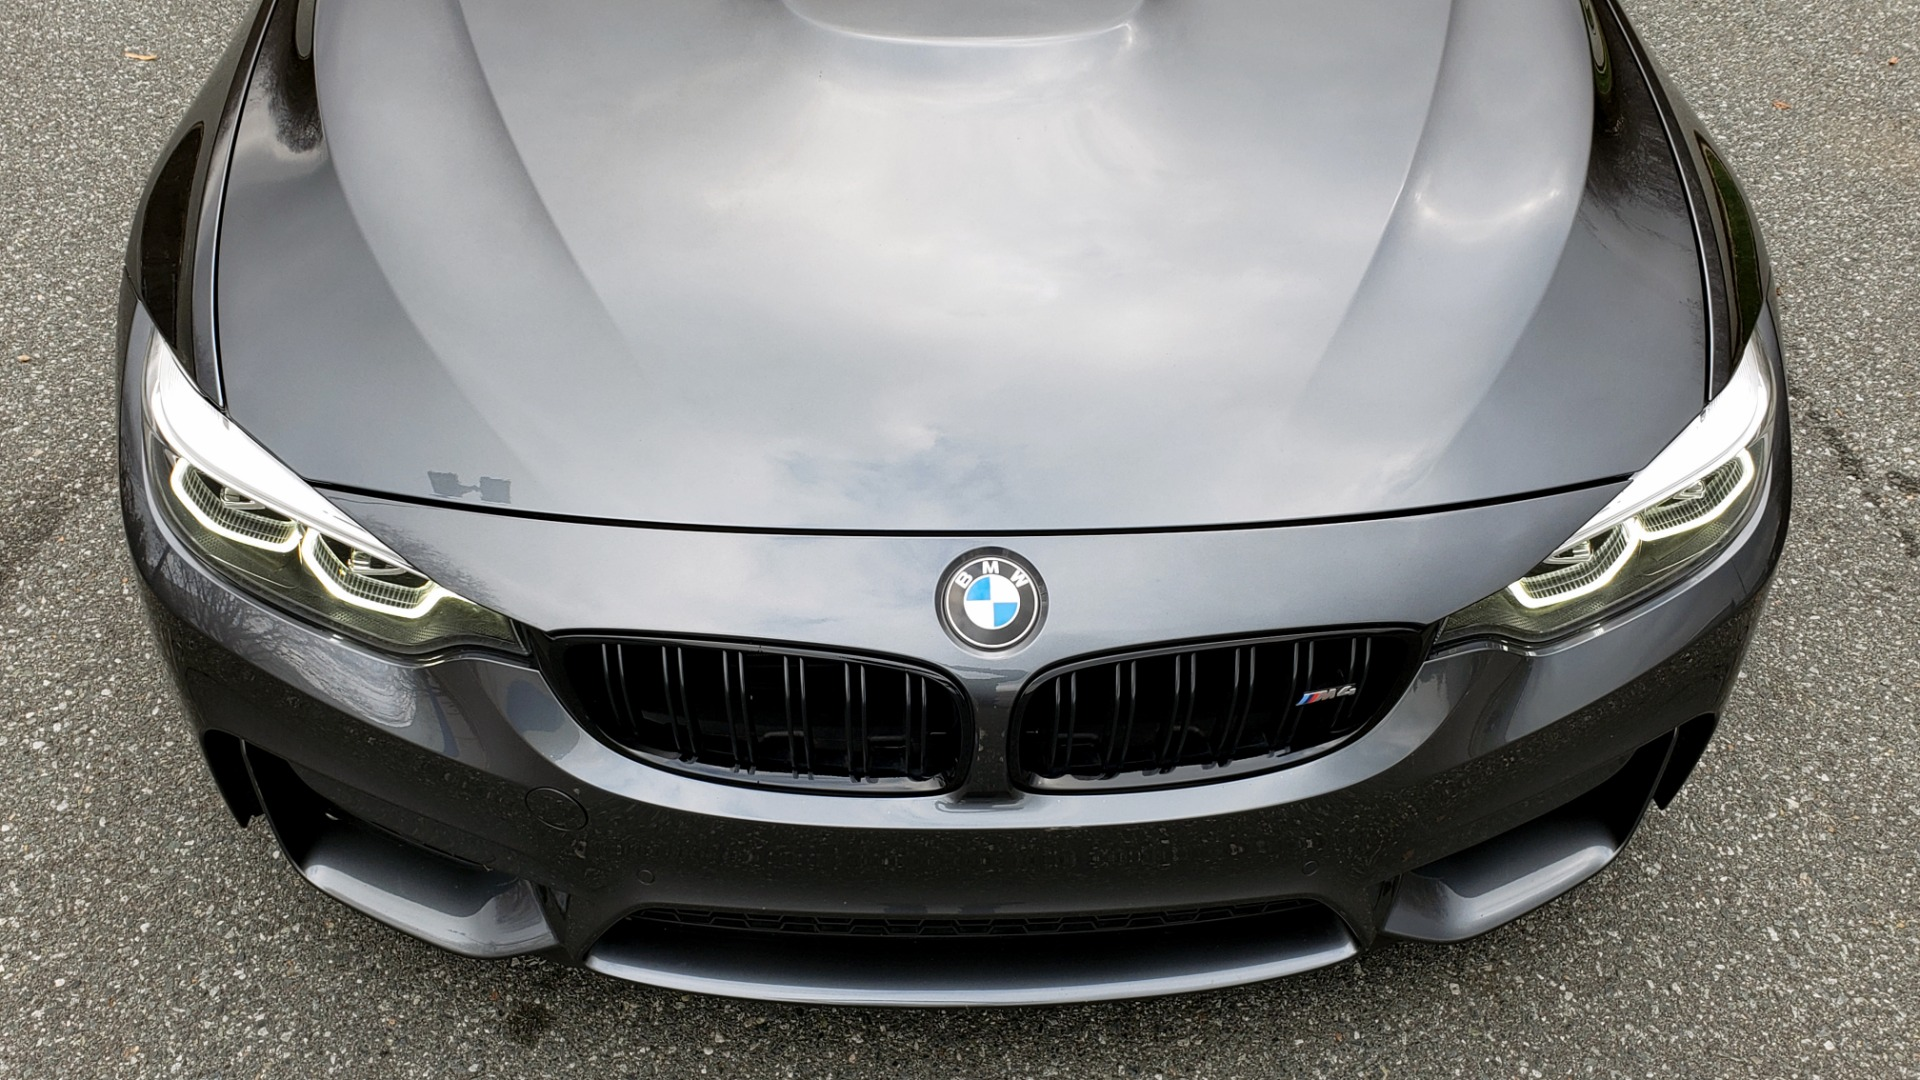 Used 2018 BMW M4 M-COMP / EXEC PKG / 7-SPD DBL CLUTCH / NAV / REARVIEW for sale Sold at Formula Imports in Charlotte NC 28227 51